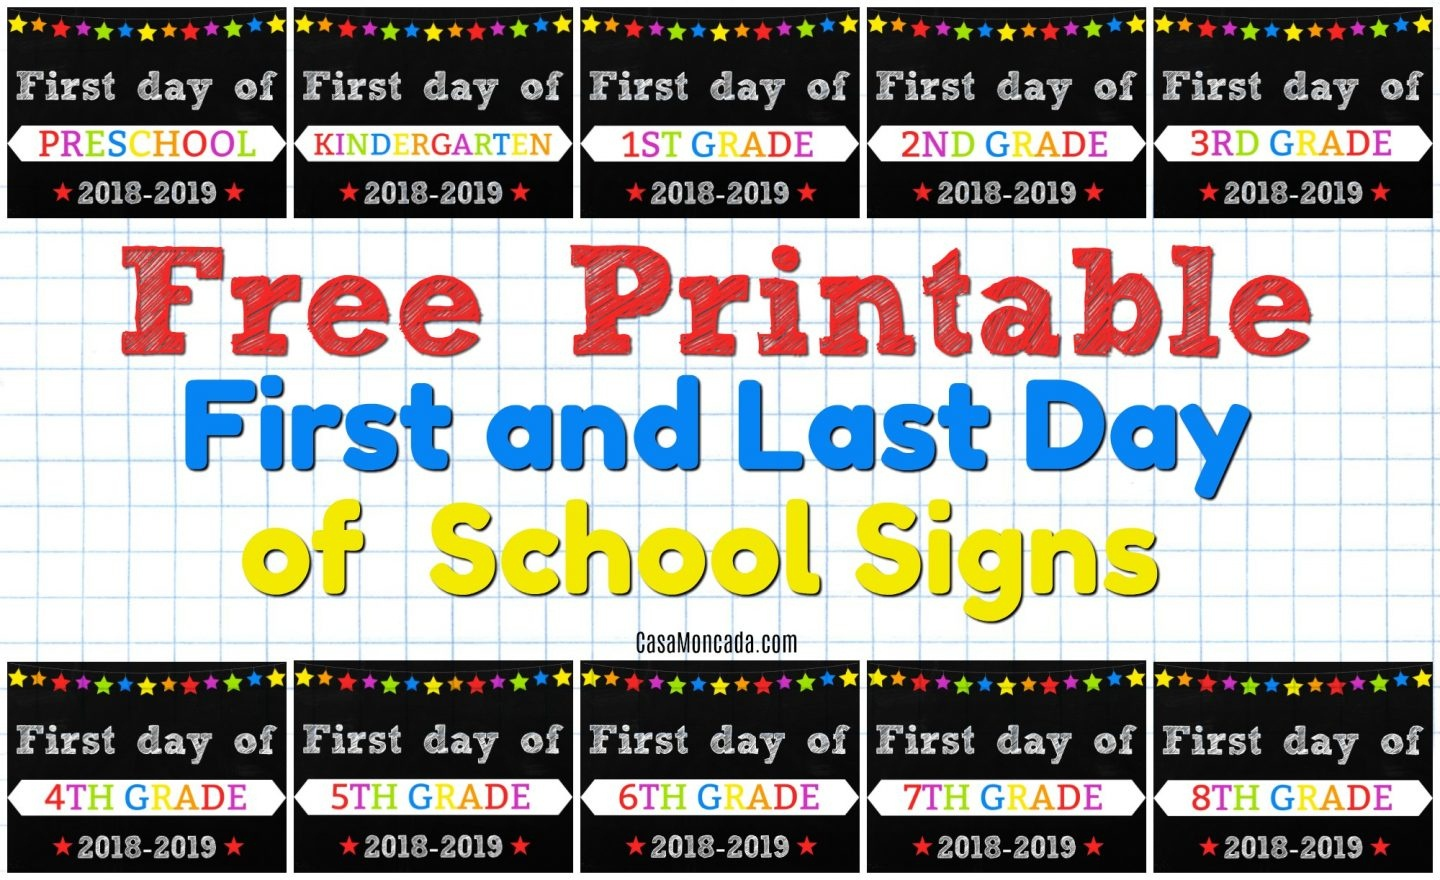 Free Printable First And Last Day Of School Signs - Casa Moncada - Free Printable First Day Of School Signs 2017 2018